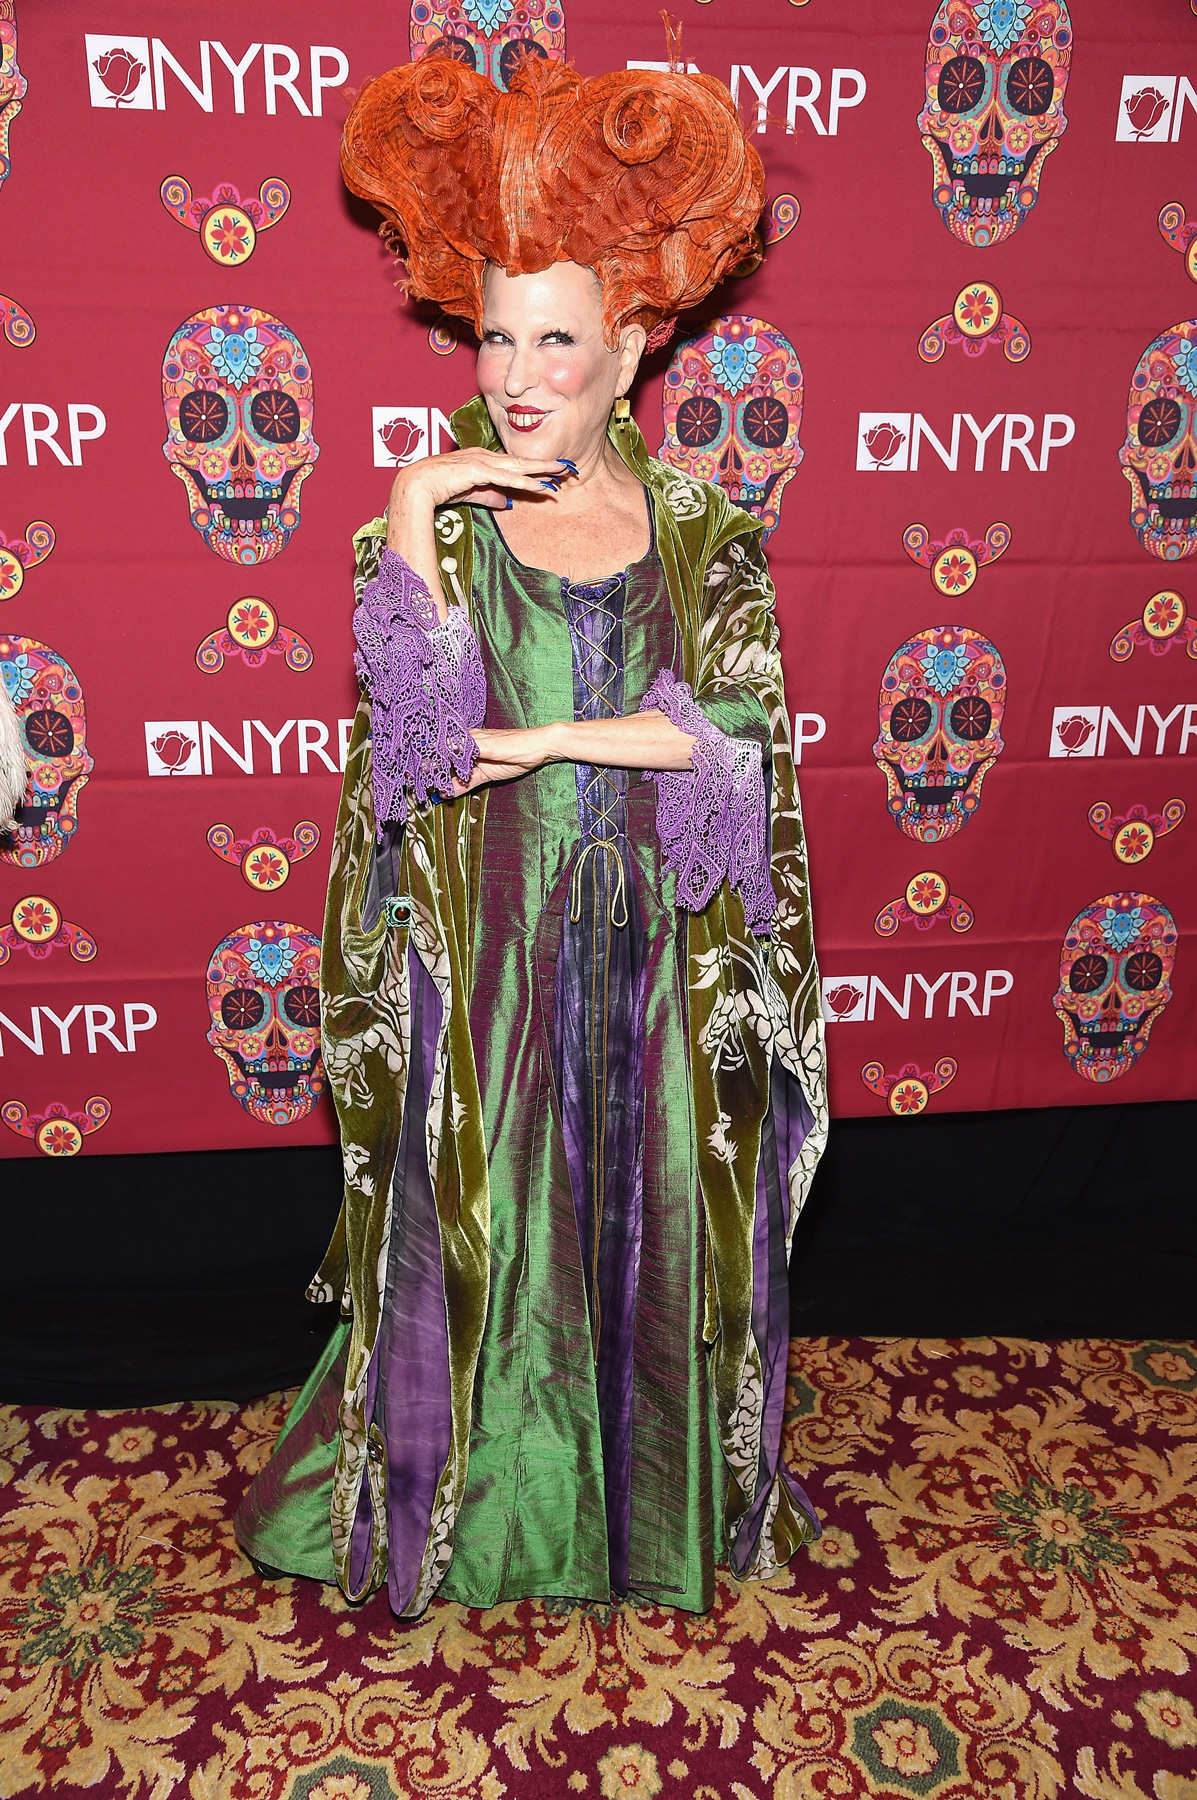 Bette Midler dressed up like her character in Hocus Pocus